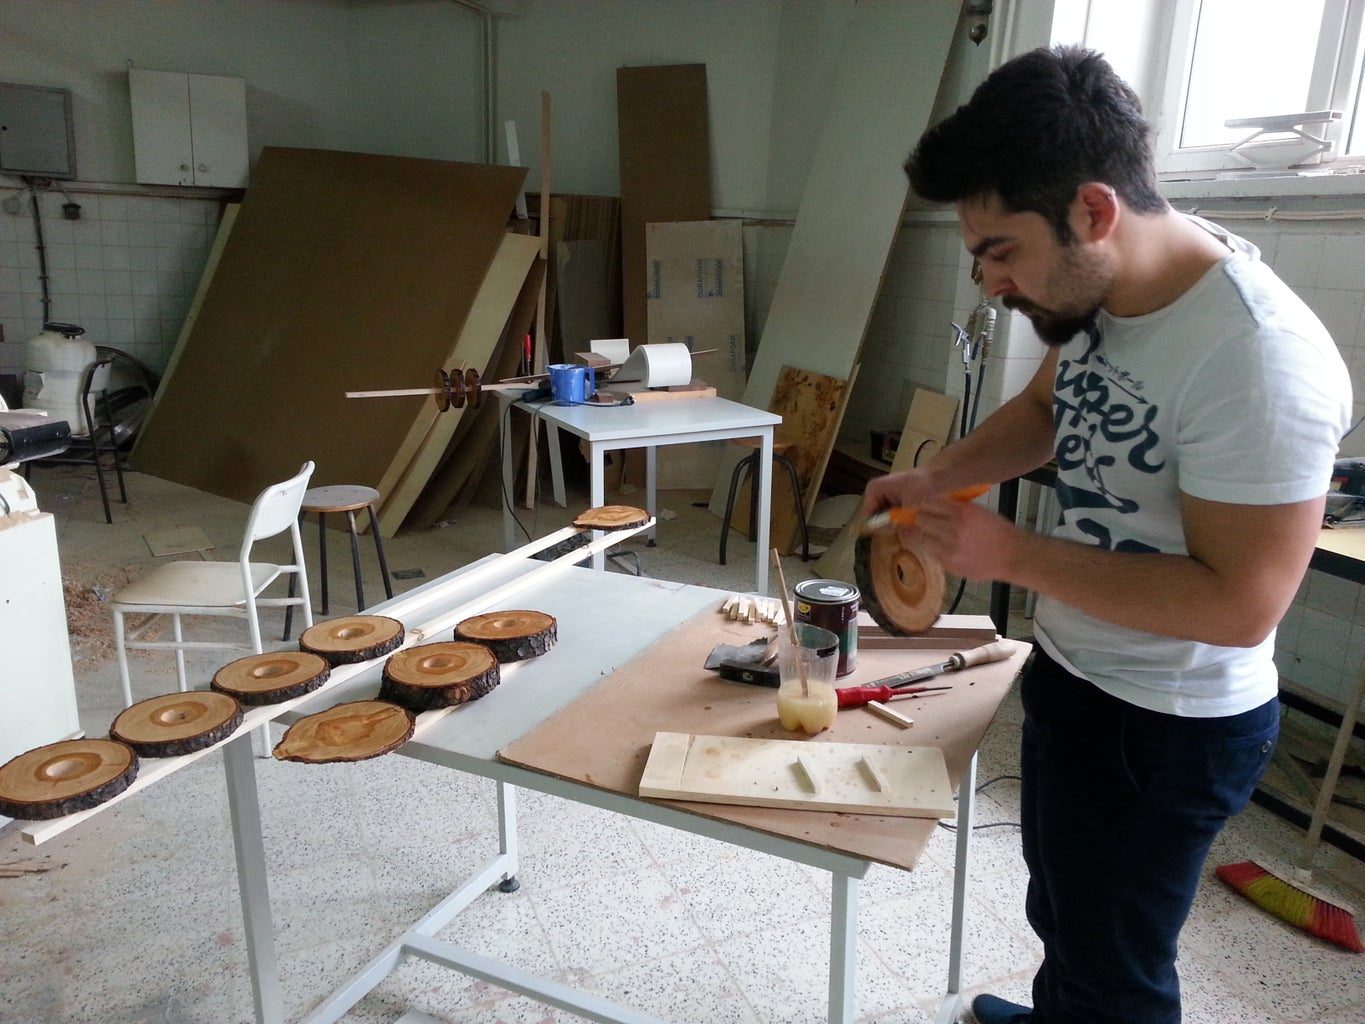 Japanning to Wooden Slices